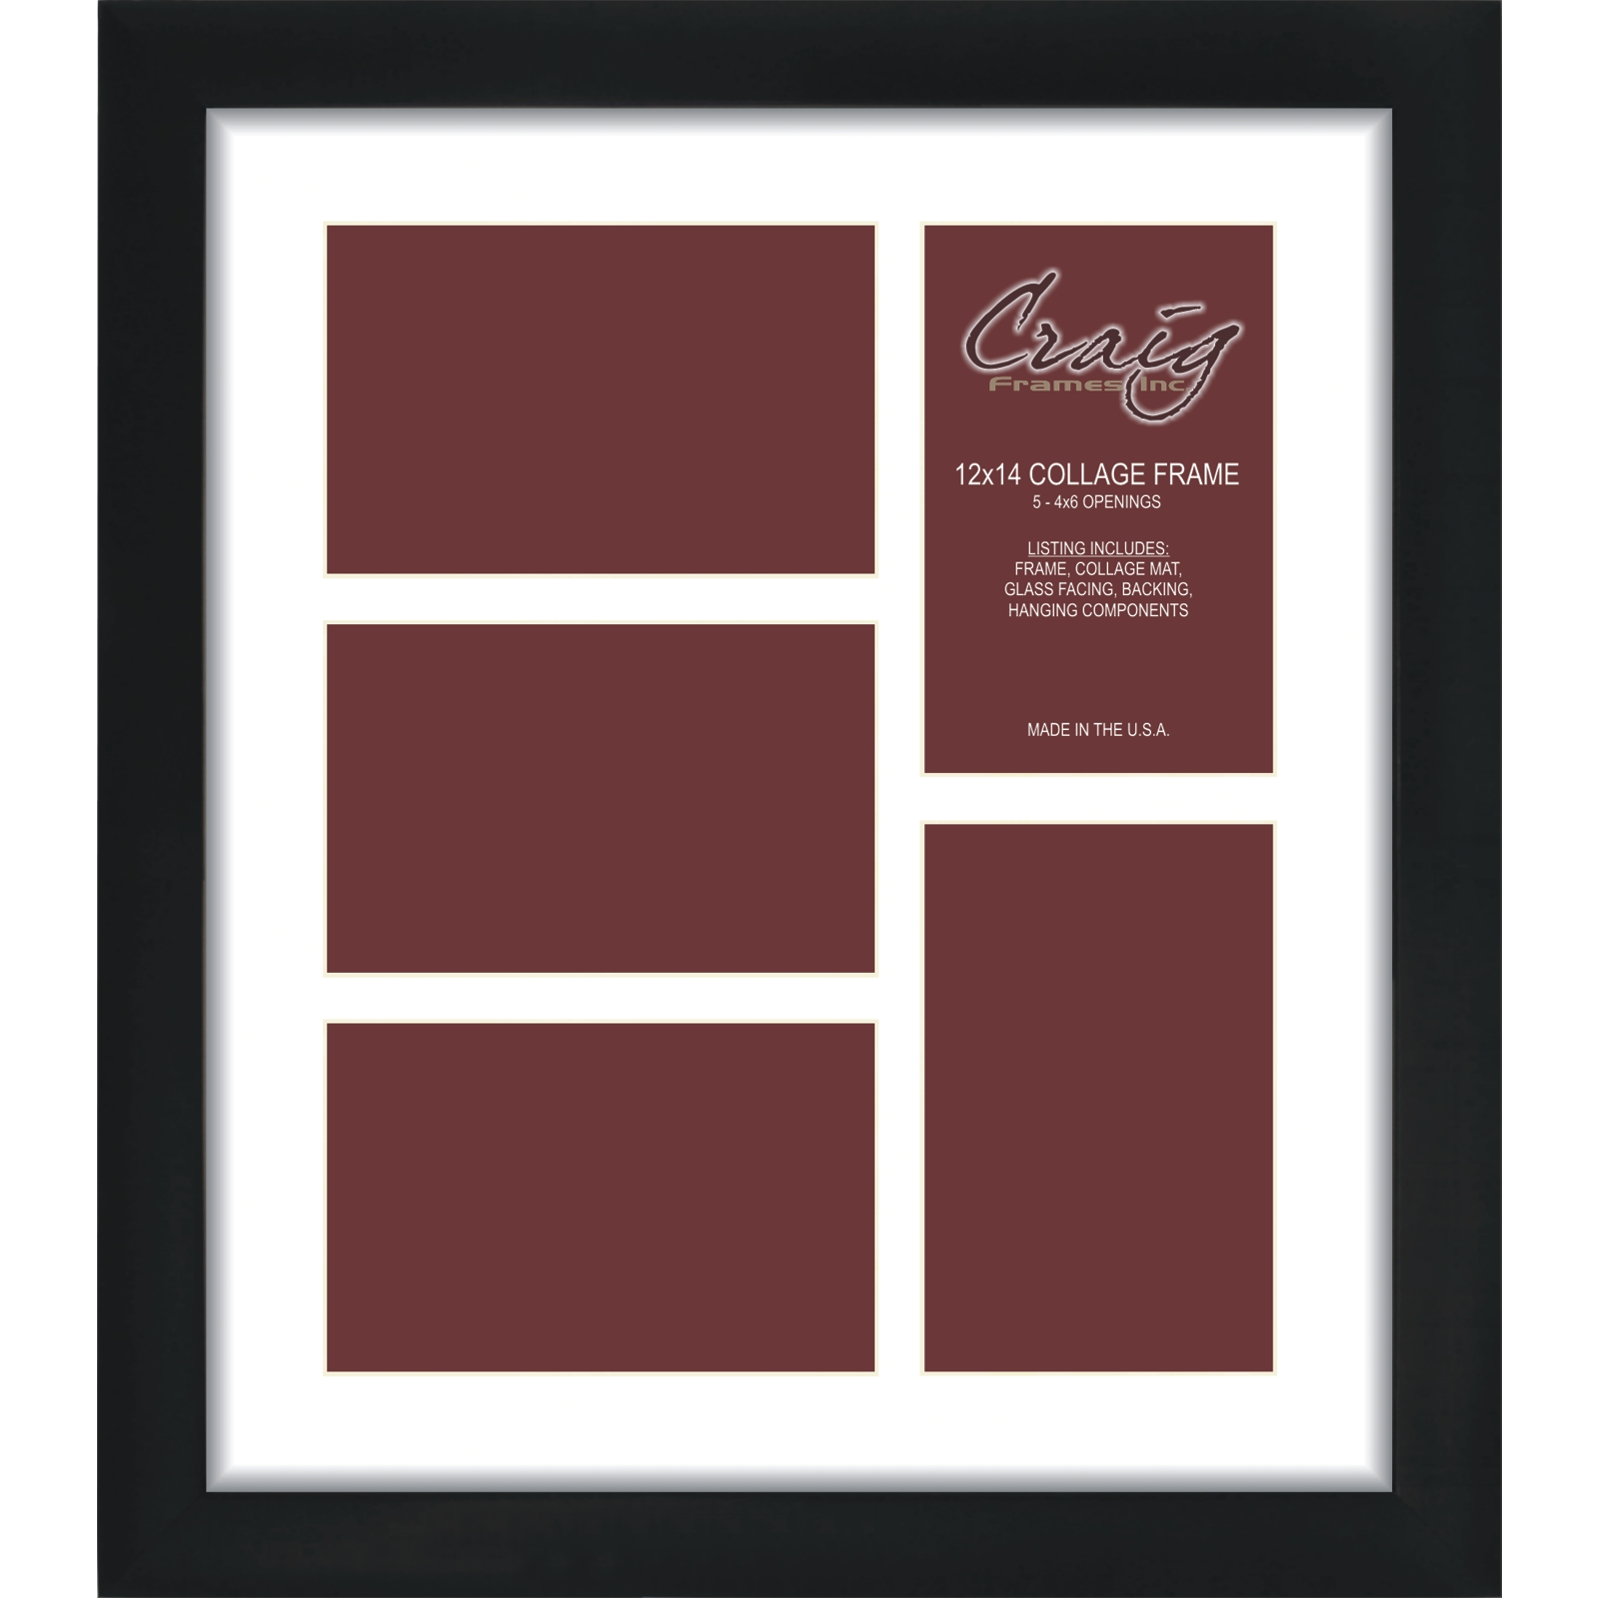 Craig Frames 1wb3bk 12x14 Black Collage Frame White Mat